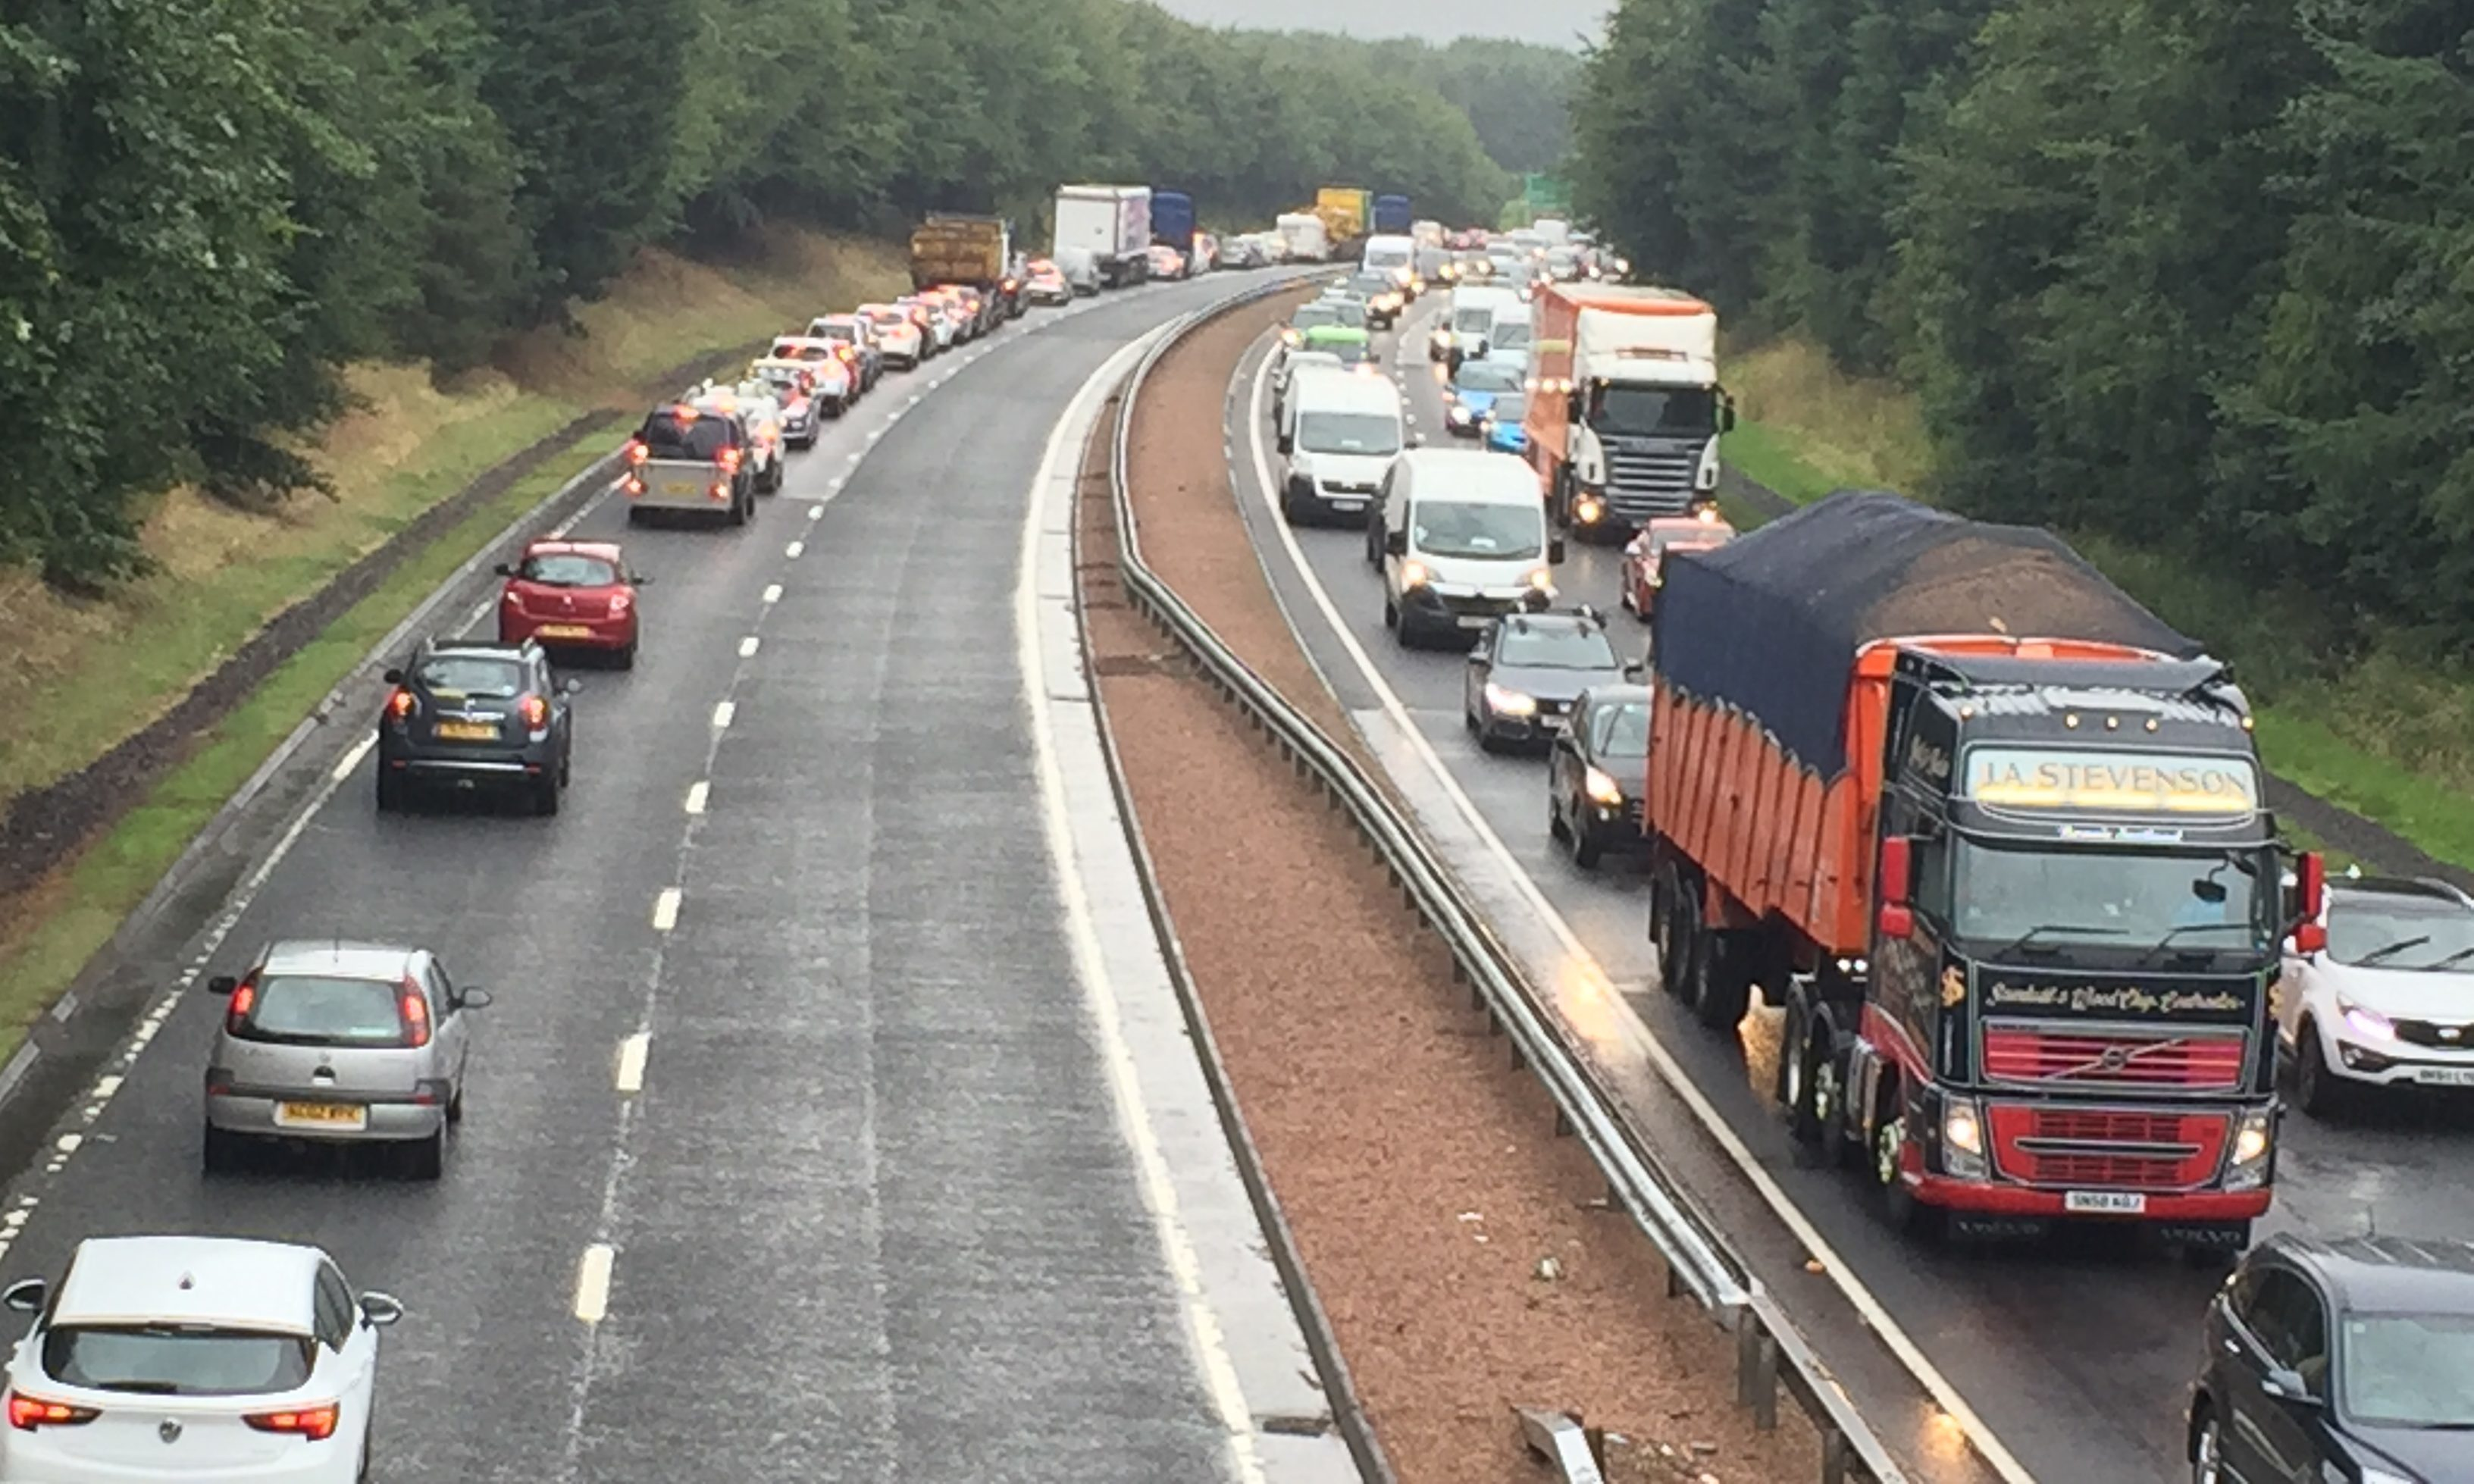 Traffic backed up on the A9 near the Noah's Ark play centre.